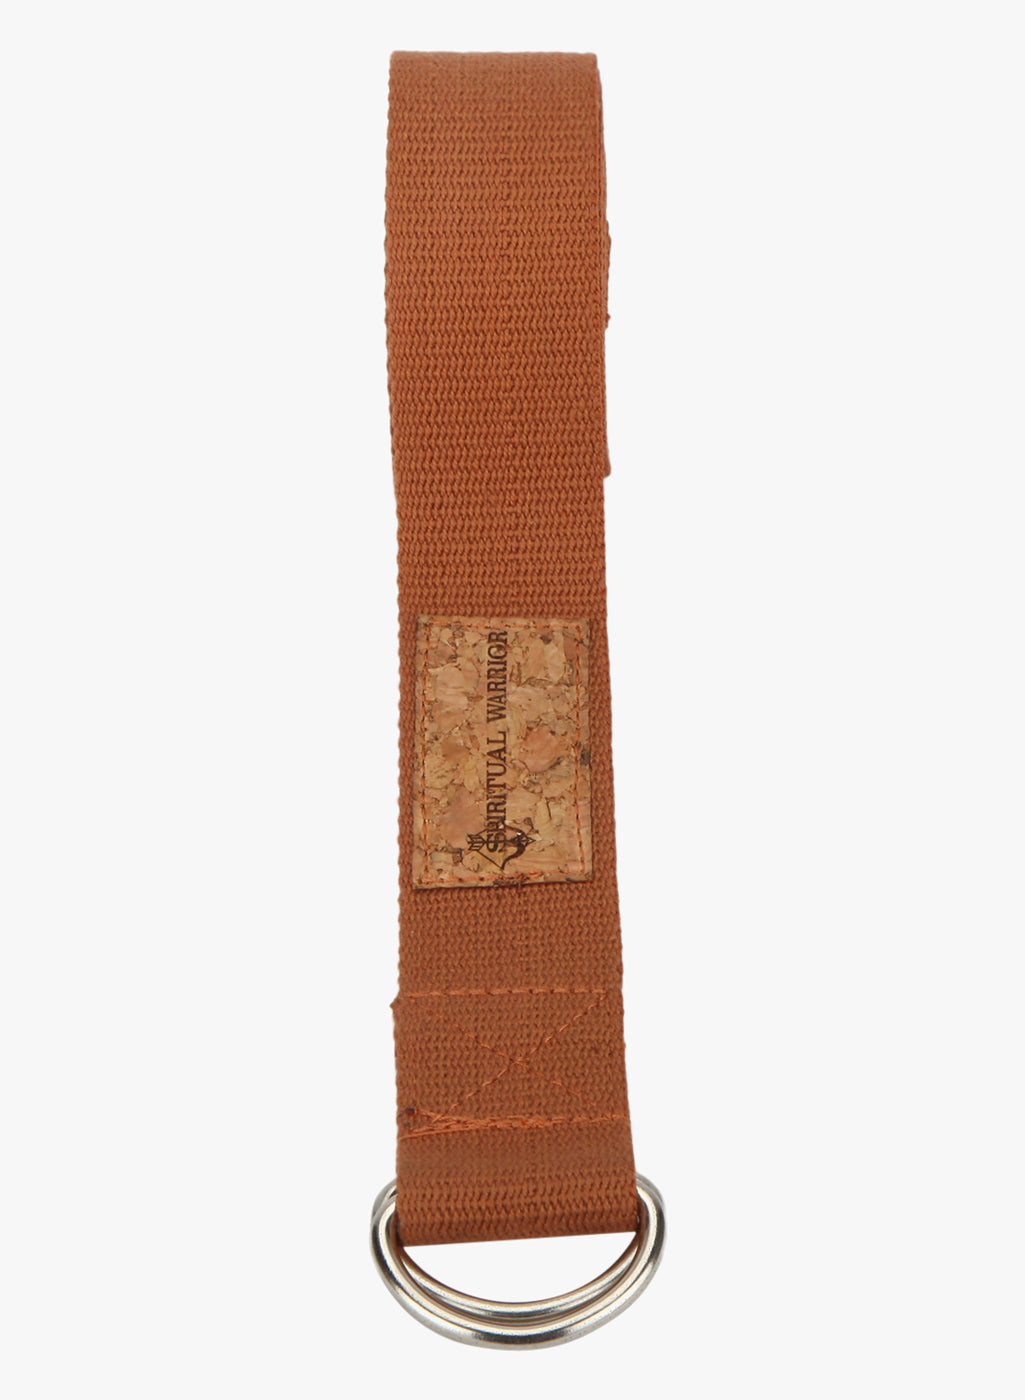 Spiritual Warrior cotton yoga strap